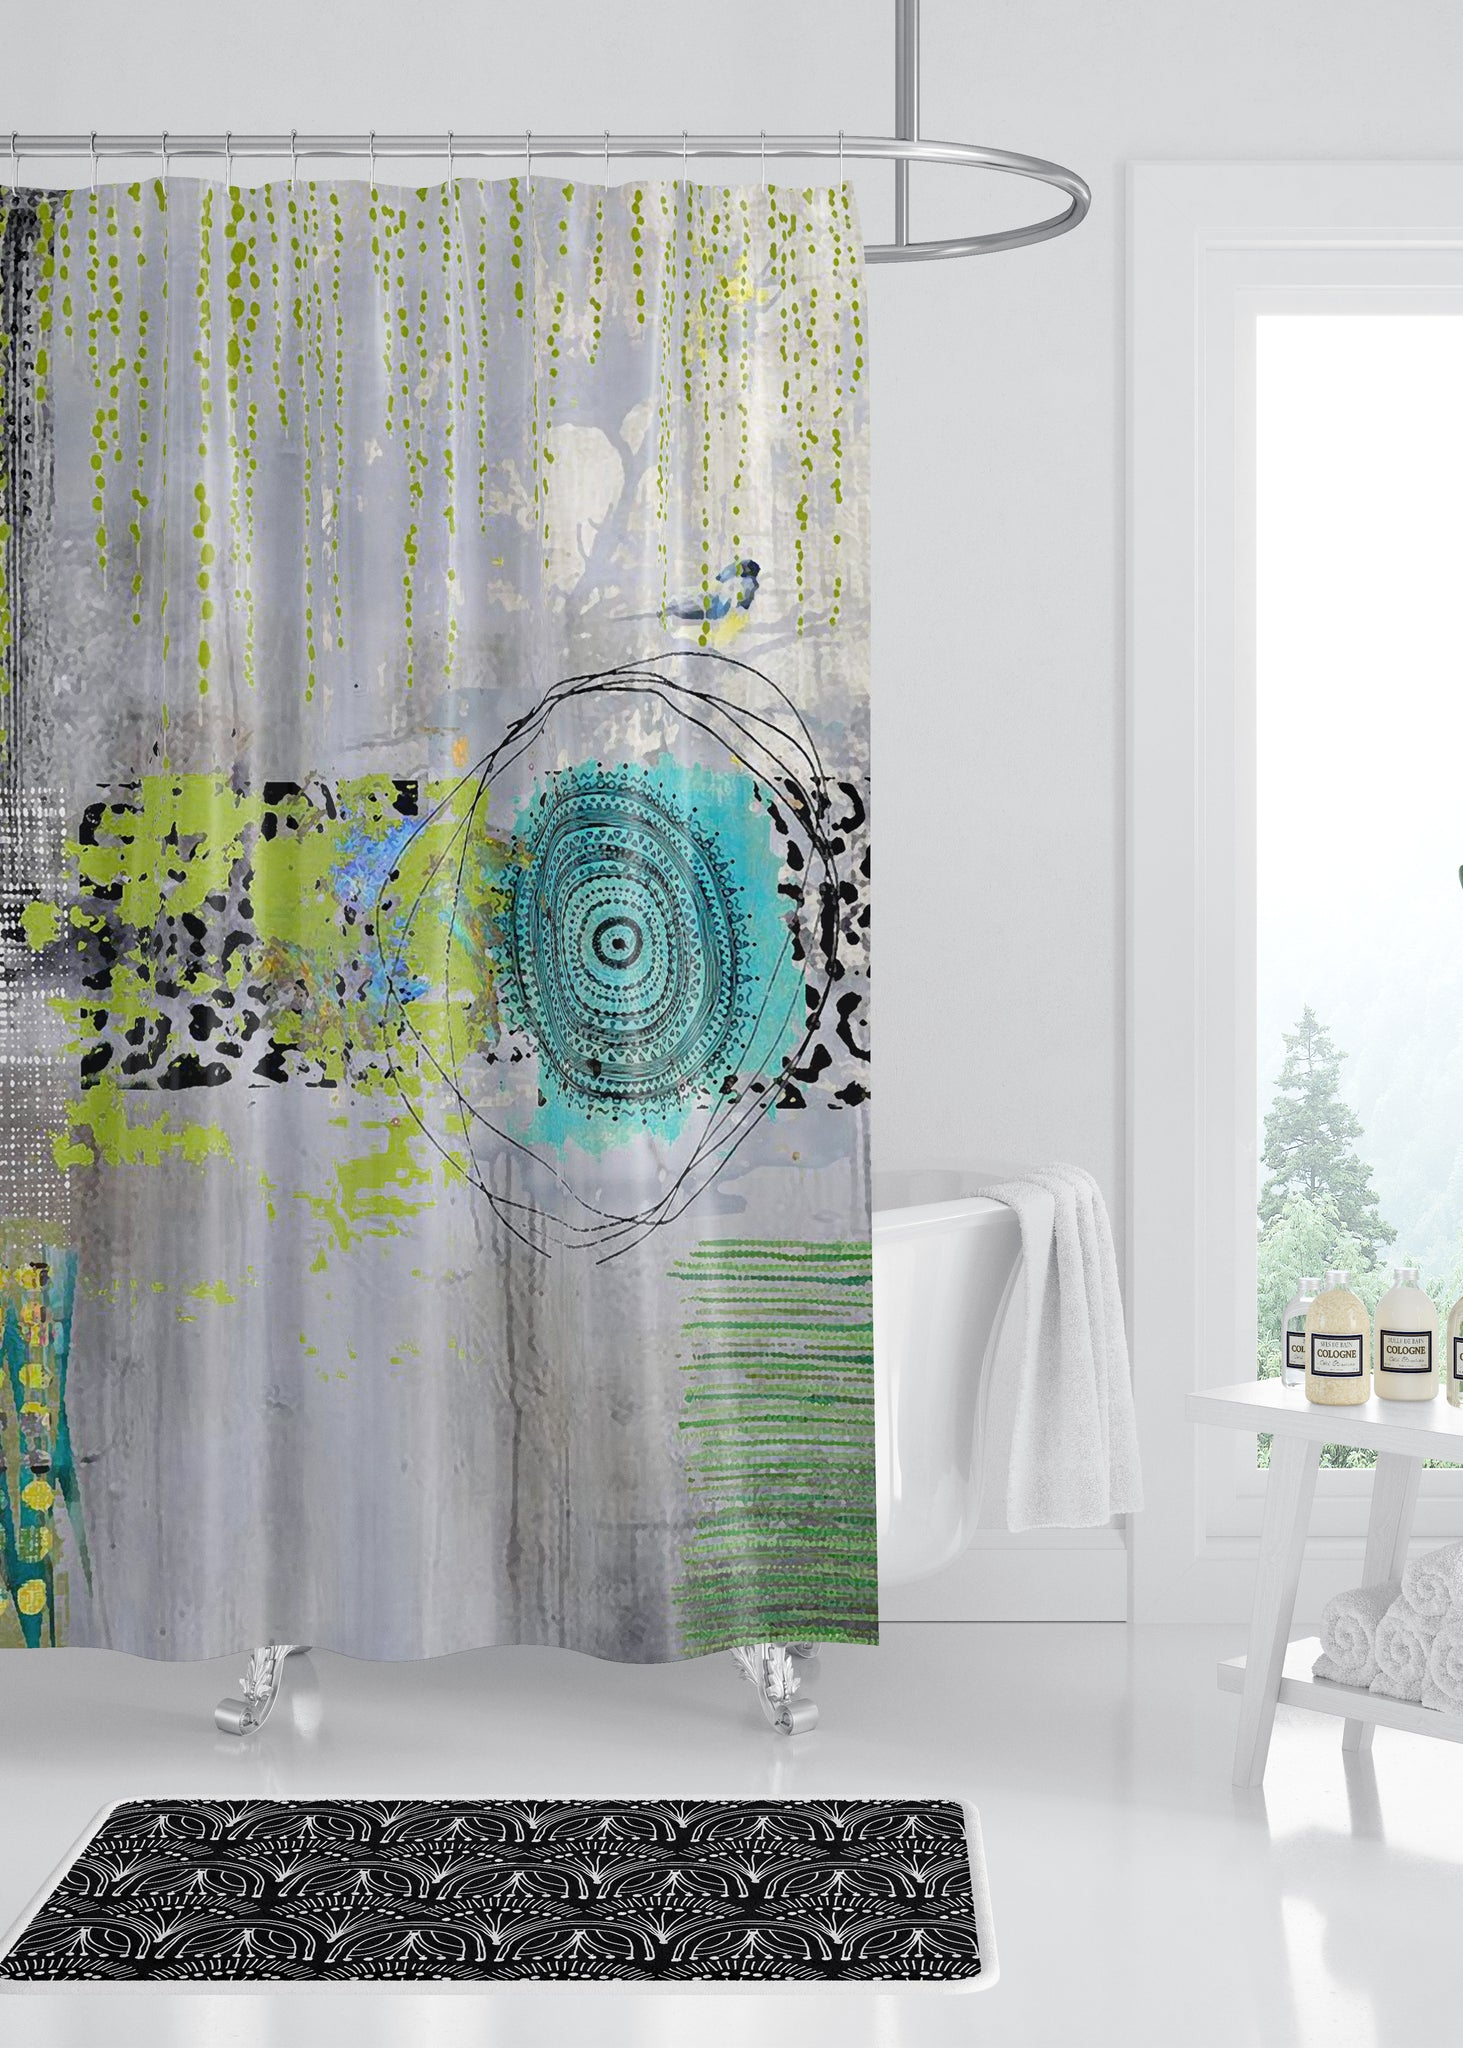 Teal Round Designer Shower Curtain by Sheree Burlington